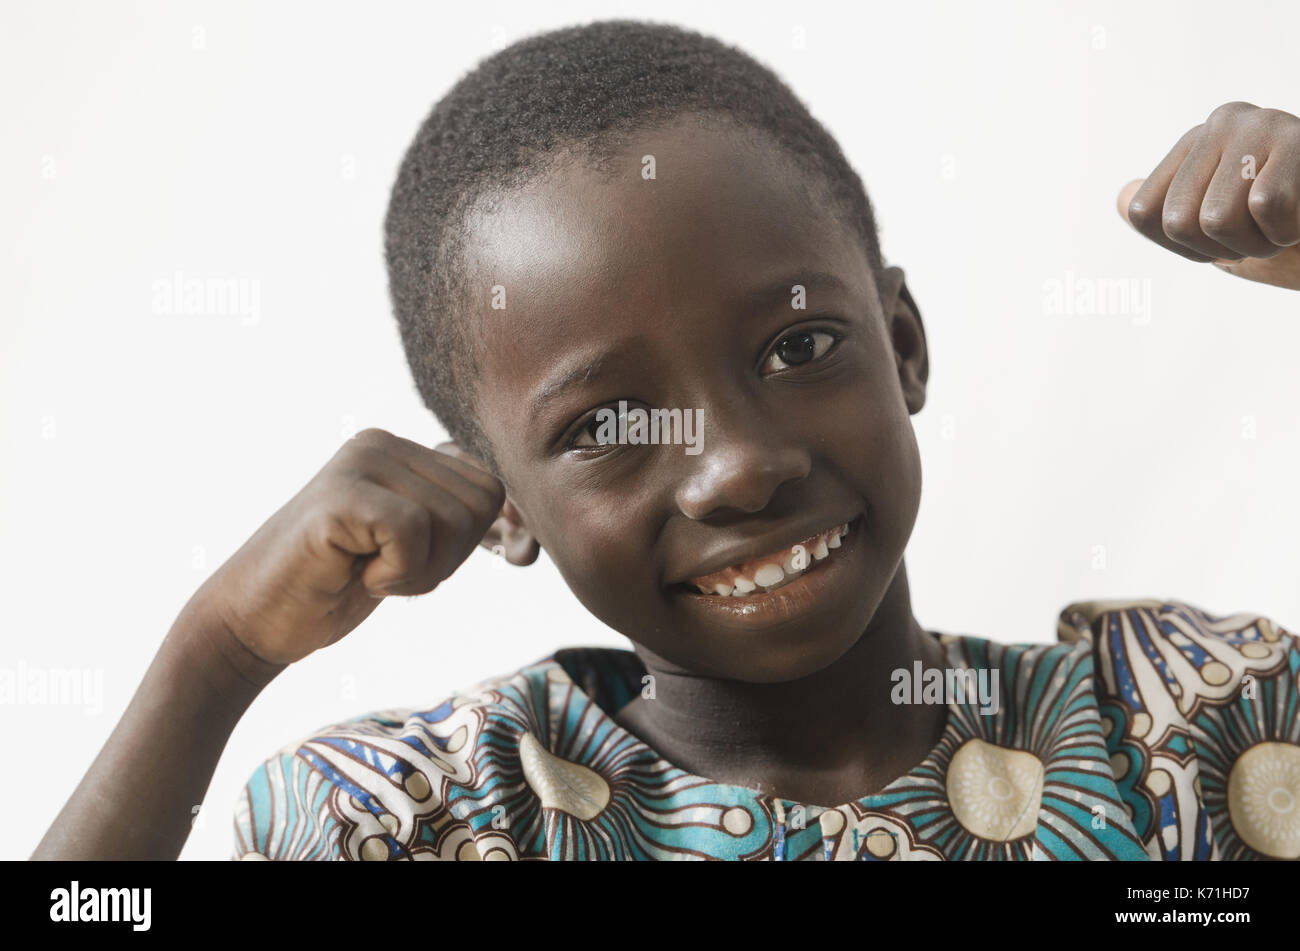 Happy African child excited with his hands up, isolated on white - Stock Image